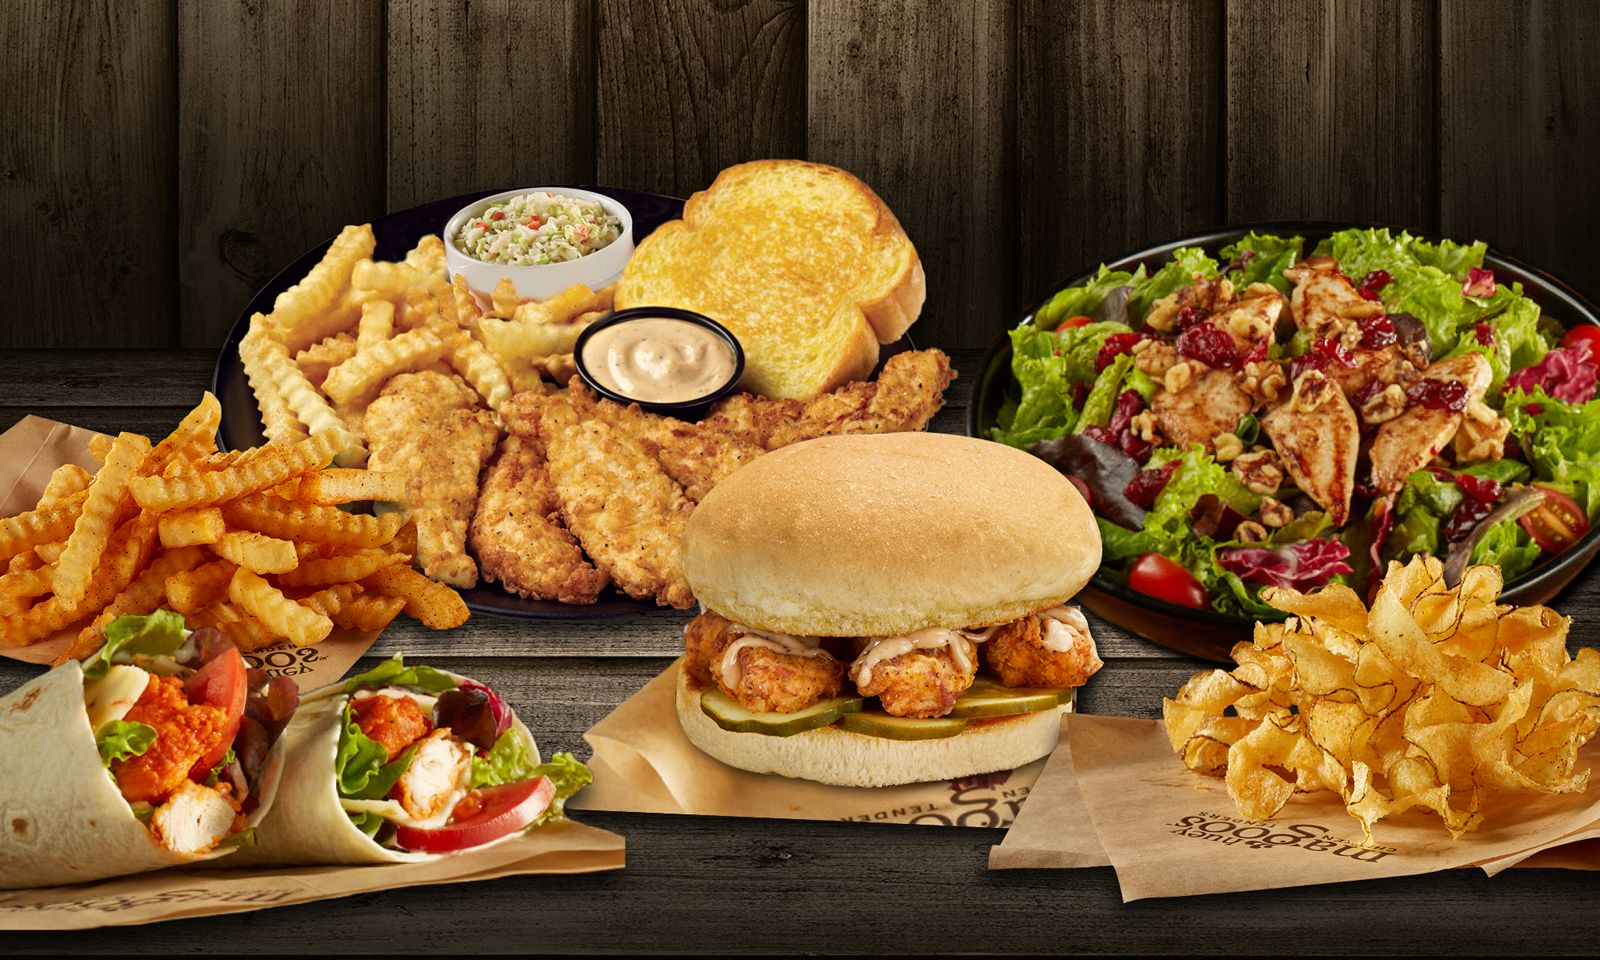 Huey Magoo's Chicken Tenders Announces New Franchises Coming To Alabama, Florida And Georgia Totaling 150 Franchises Sold